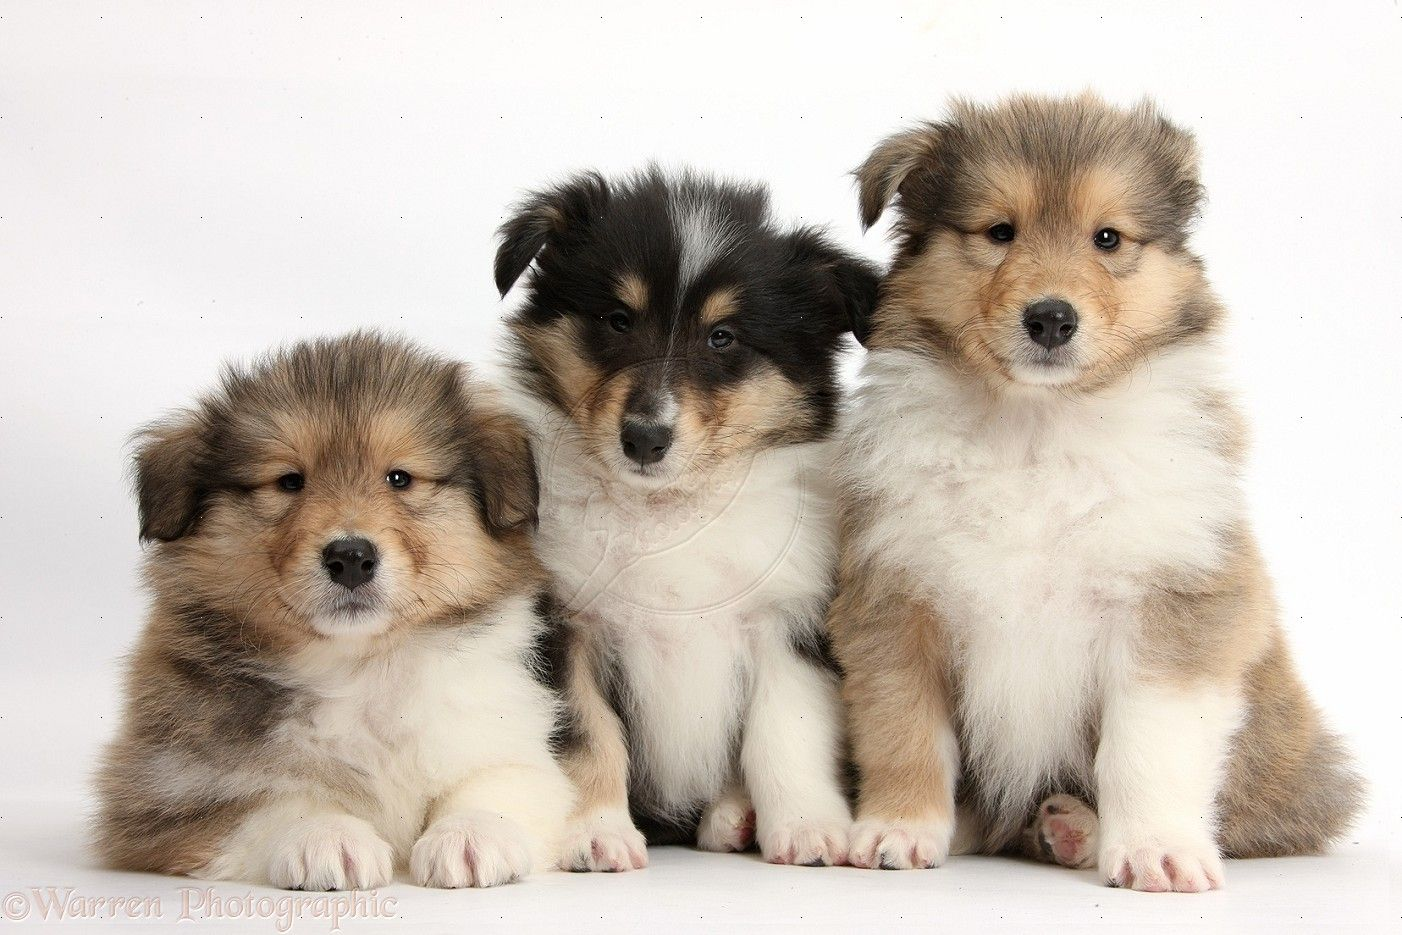 Fluffy Rough Collie Pups Rough Collie Collie Puppies Kittens